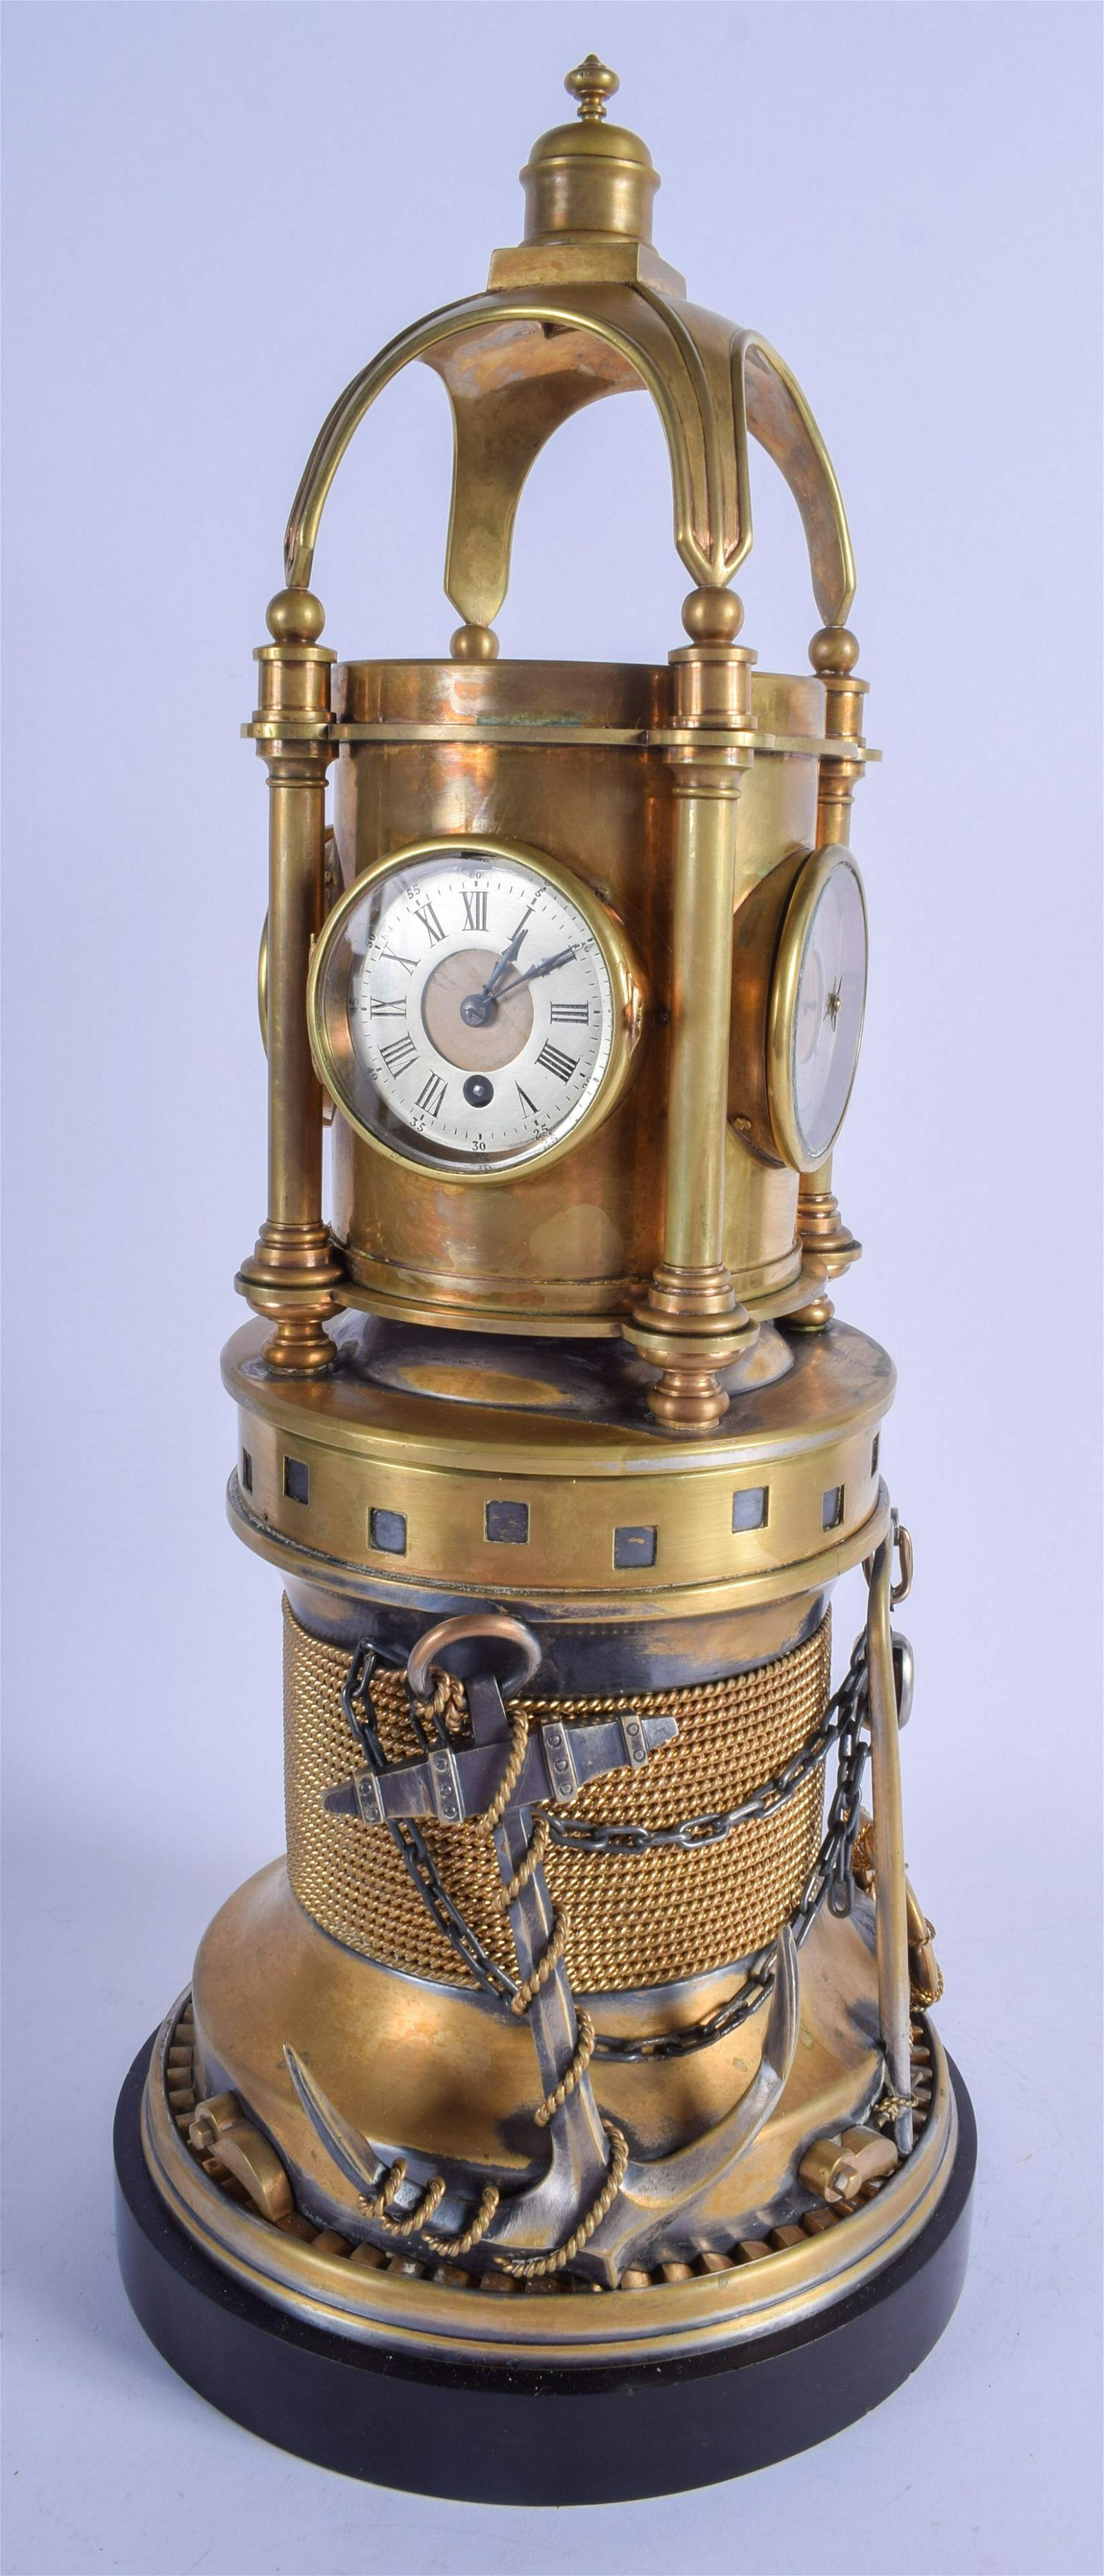 A LARGE AND RARE 19TH CENTURY FRENCH INDUSTRIAL